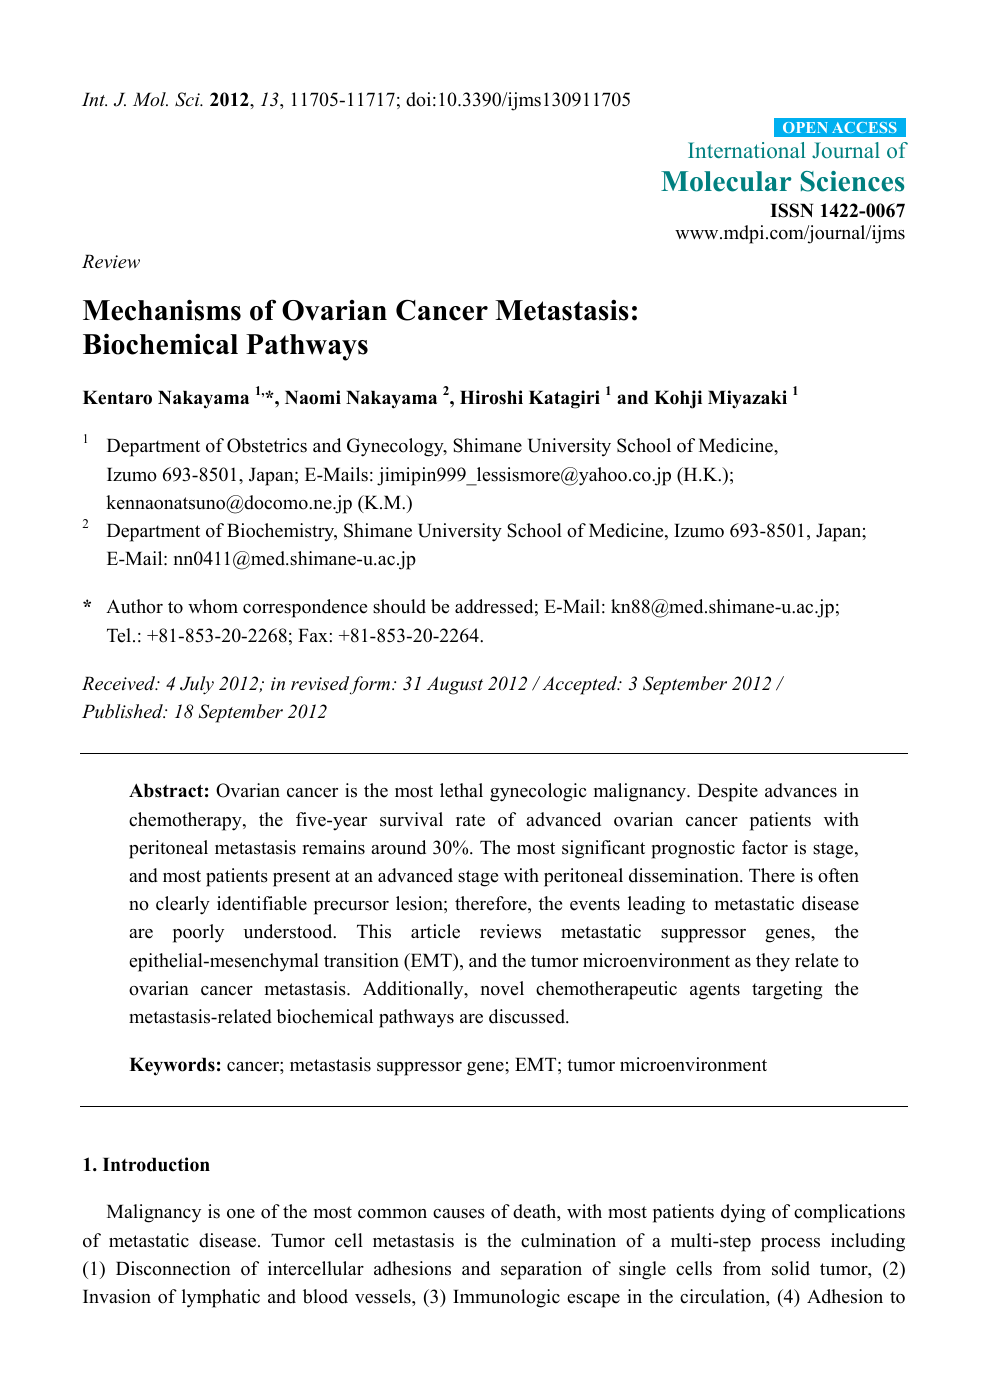 Mechanisms Of Ovarian Cancer Metastasis Biochemical Pathways Topic Of Research Paper In Biological Sciences Download Scholarly Article Pdf And Read For Free On Cyberleninka Open Science Hub